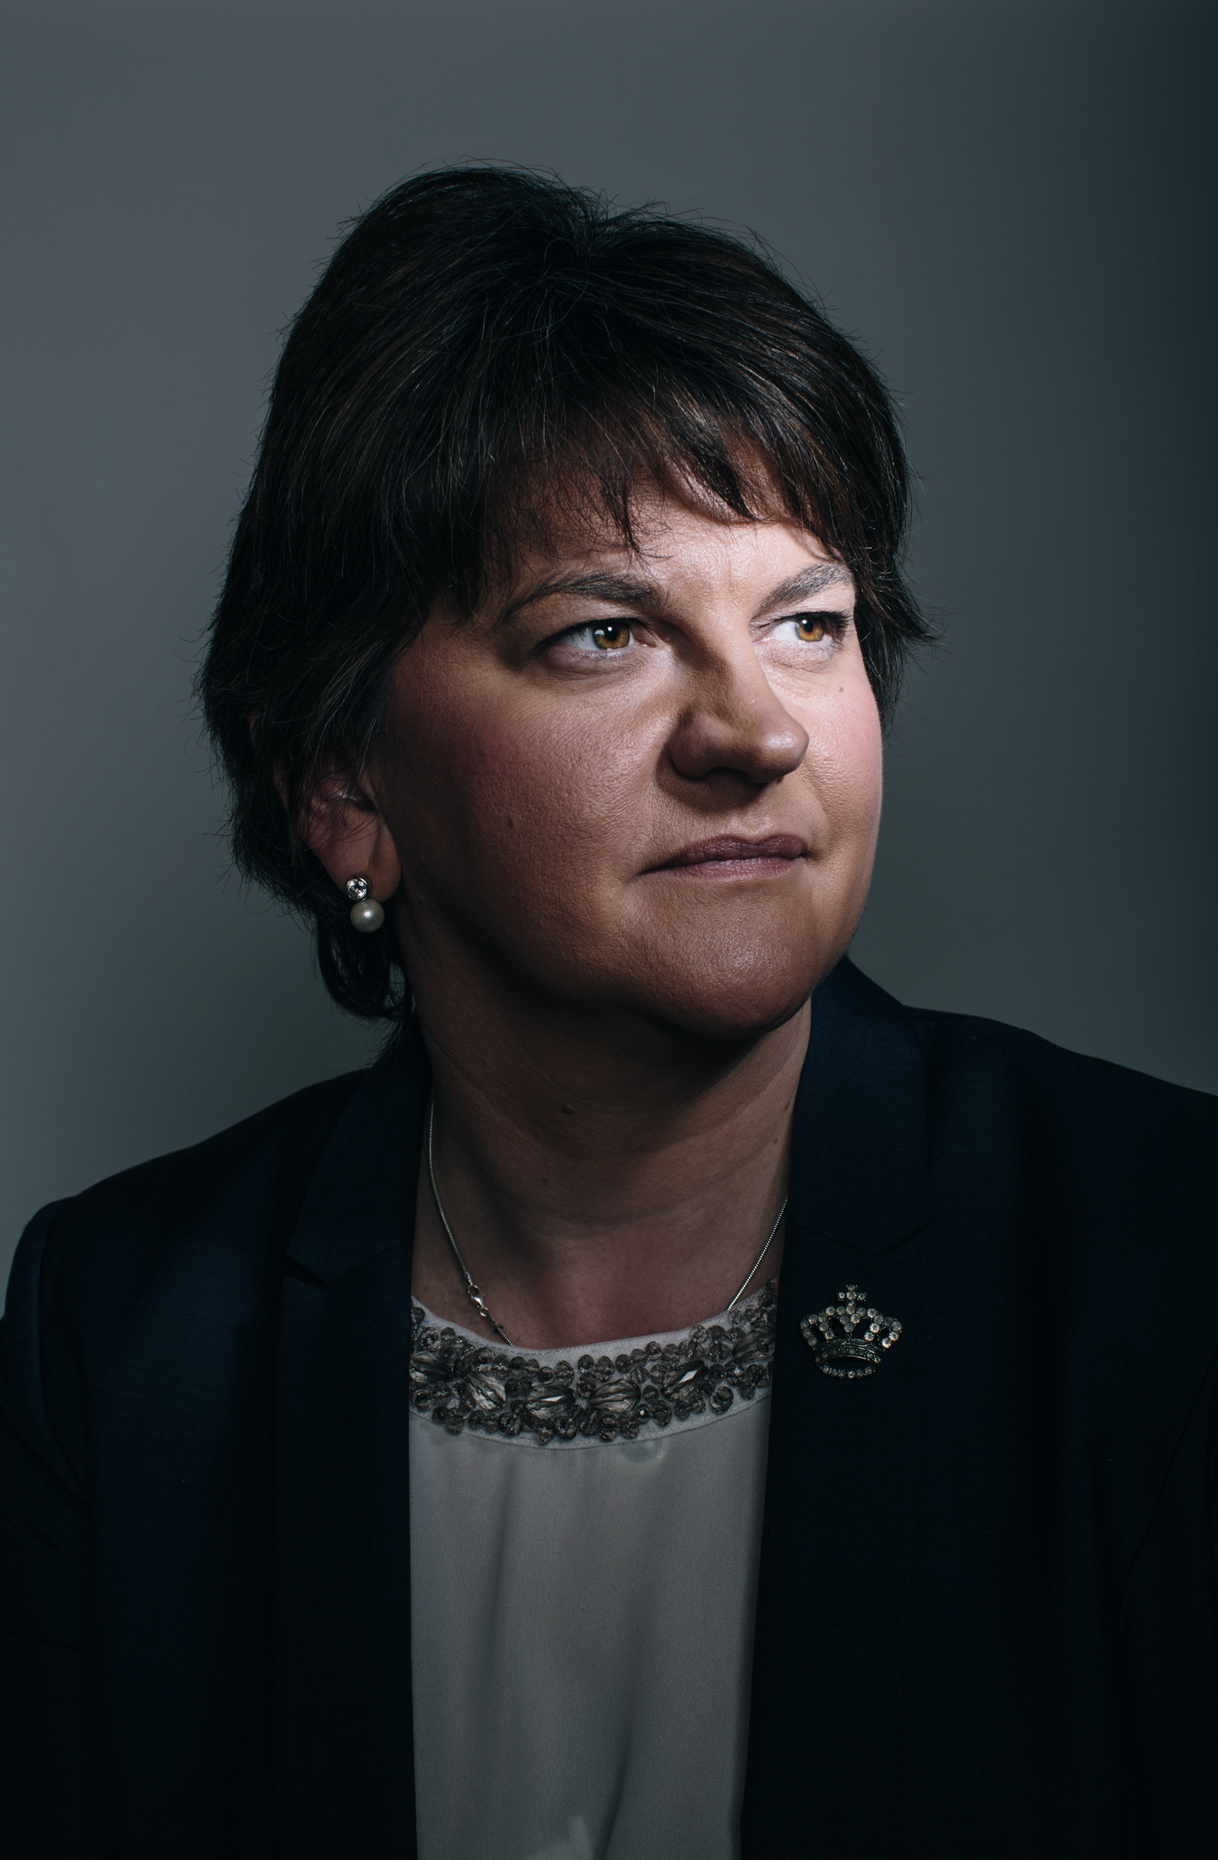 corporate portrait photography: arlene foster politician